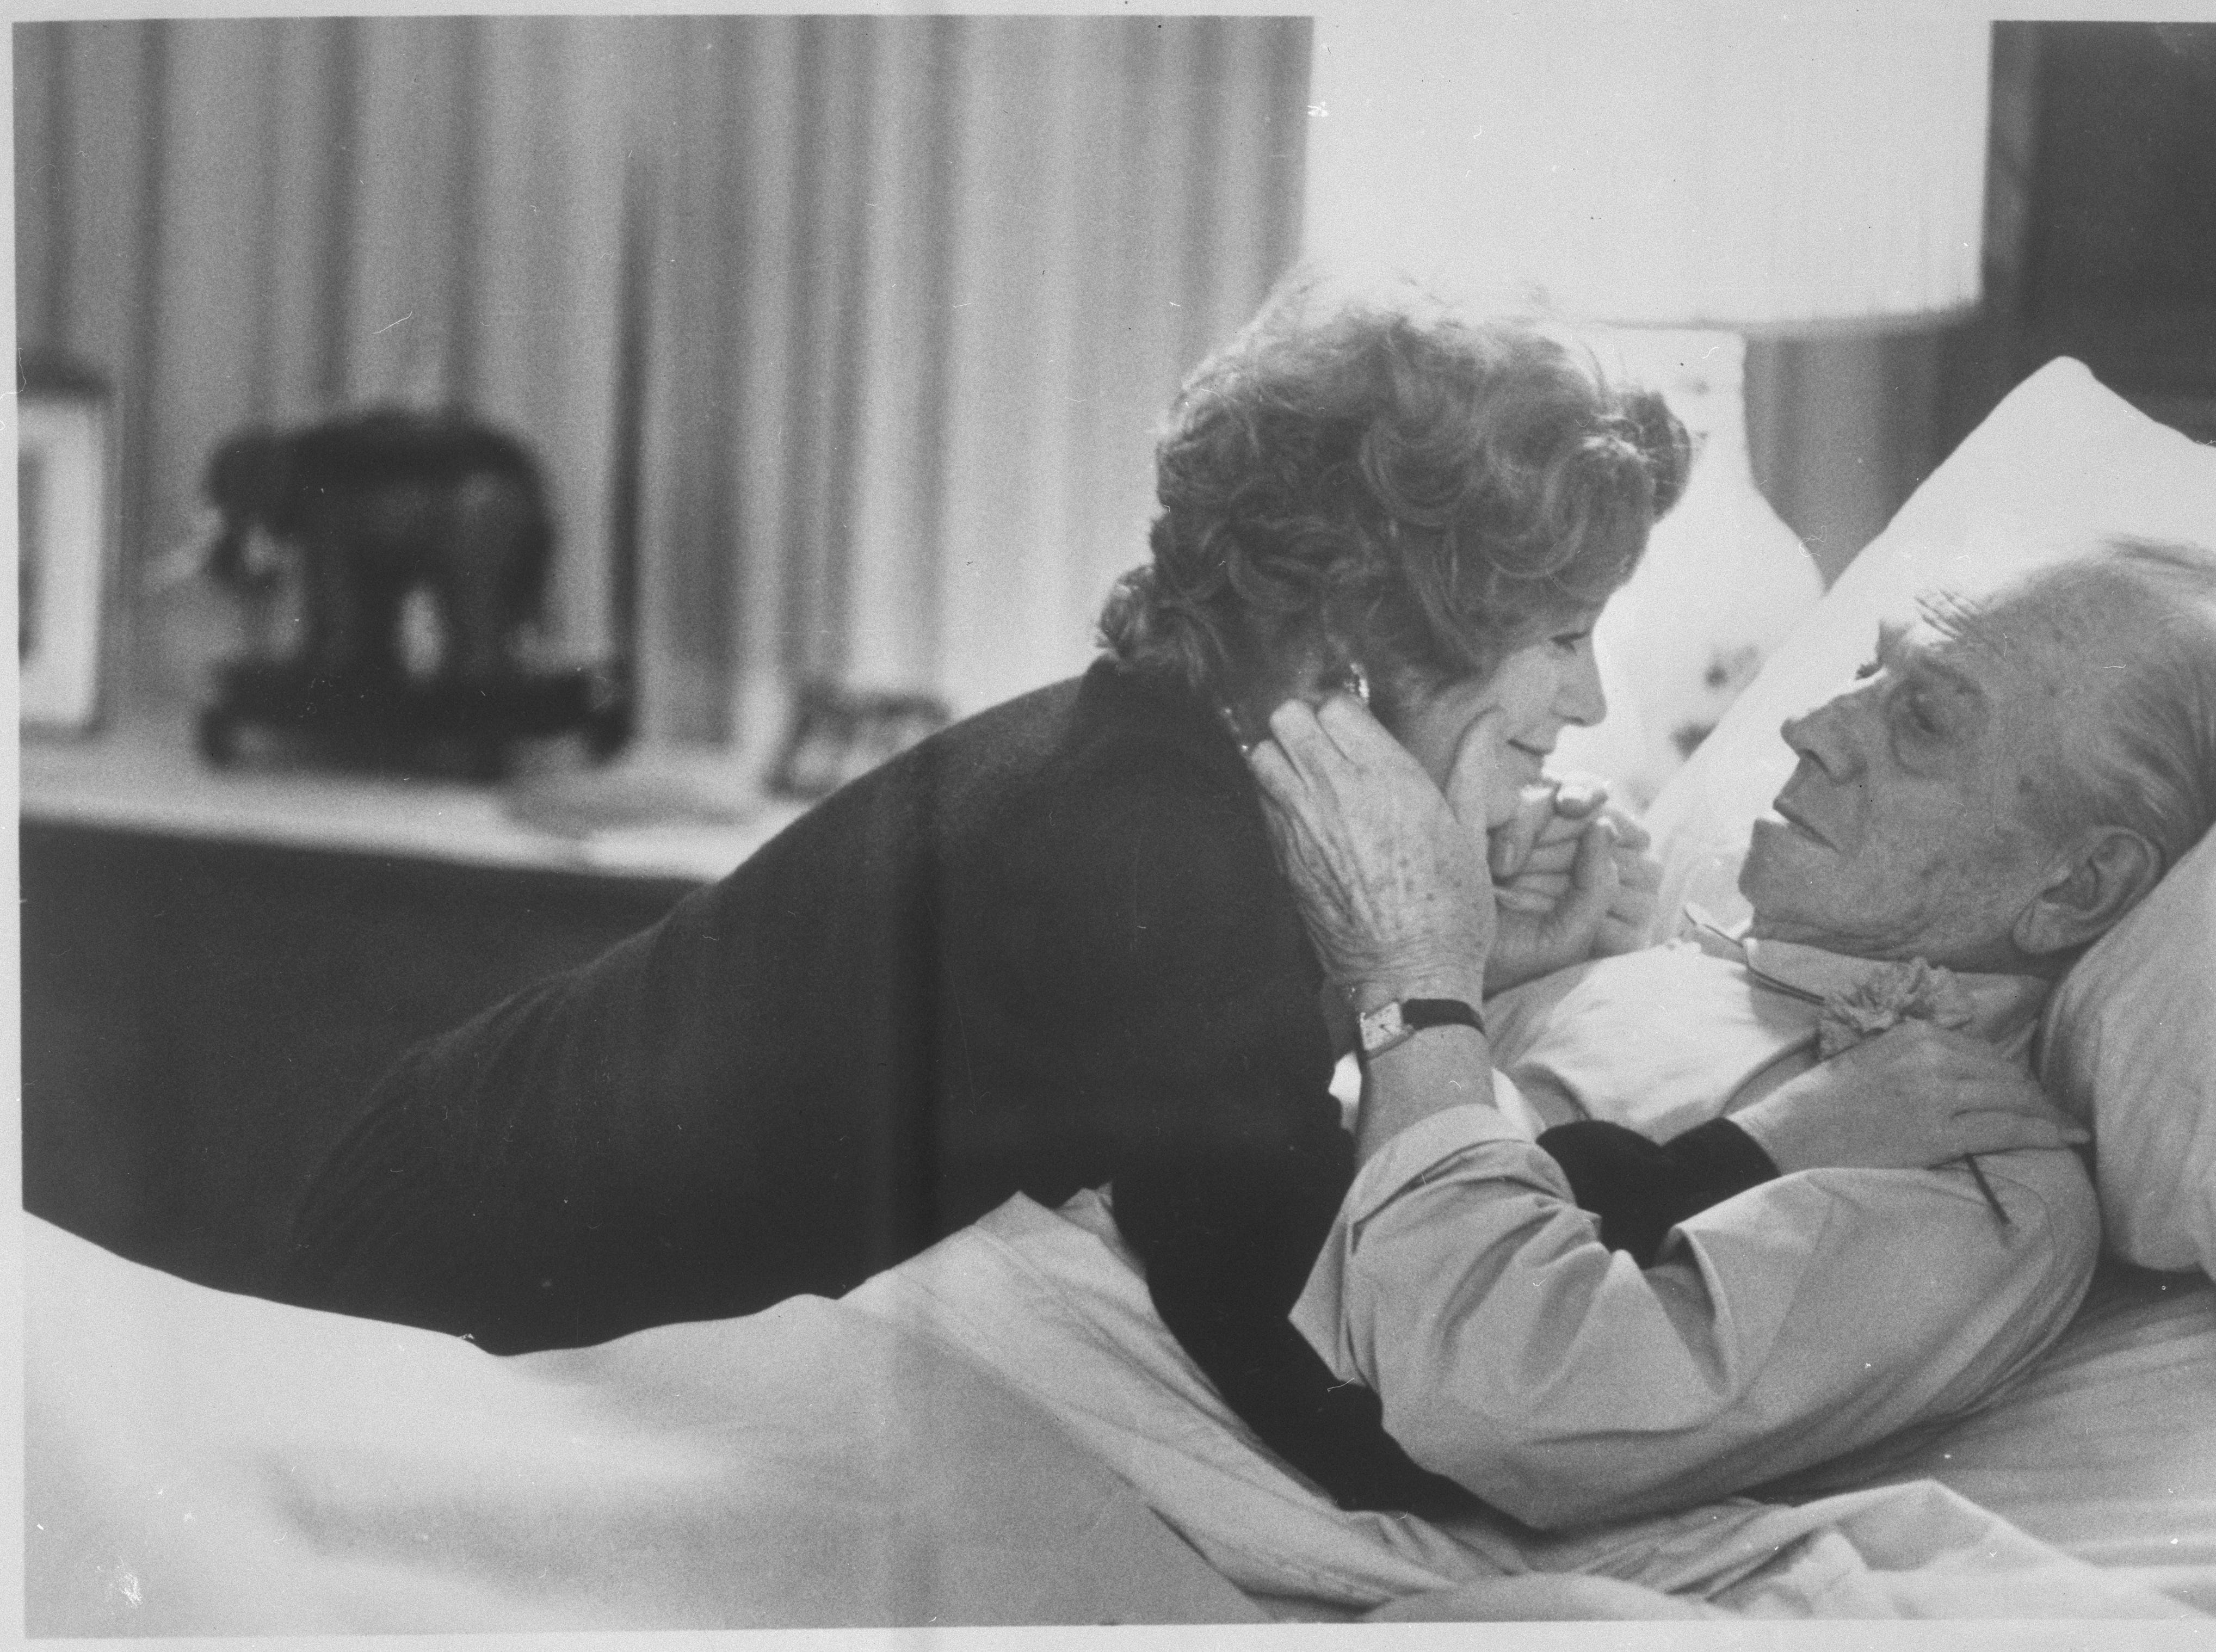 ONE TIME USE 2/21/2019 Melvyn Douglas, in the role of ailing financier Benjamin Rand, shares a tender moment with Shirley MacLaine, who plays his wife, Eve Rand in the film Being There. It was announced that Douglas is one of those nominated for an Academy Award in the best supporting actor category because of his work in the film. He won an Oscar in the same category for his work in Hud in 1963.